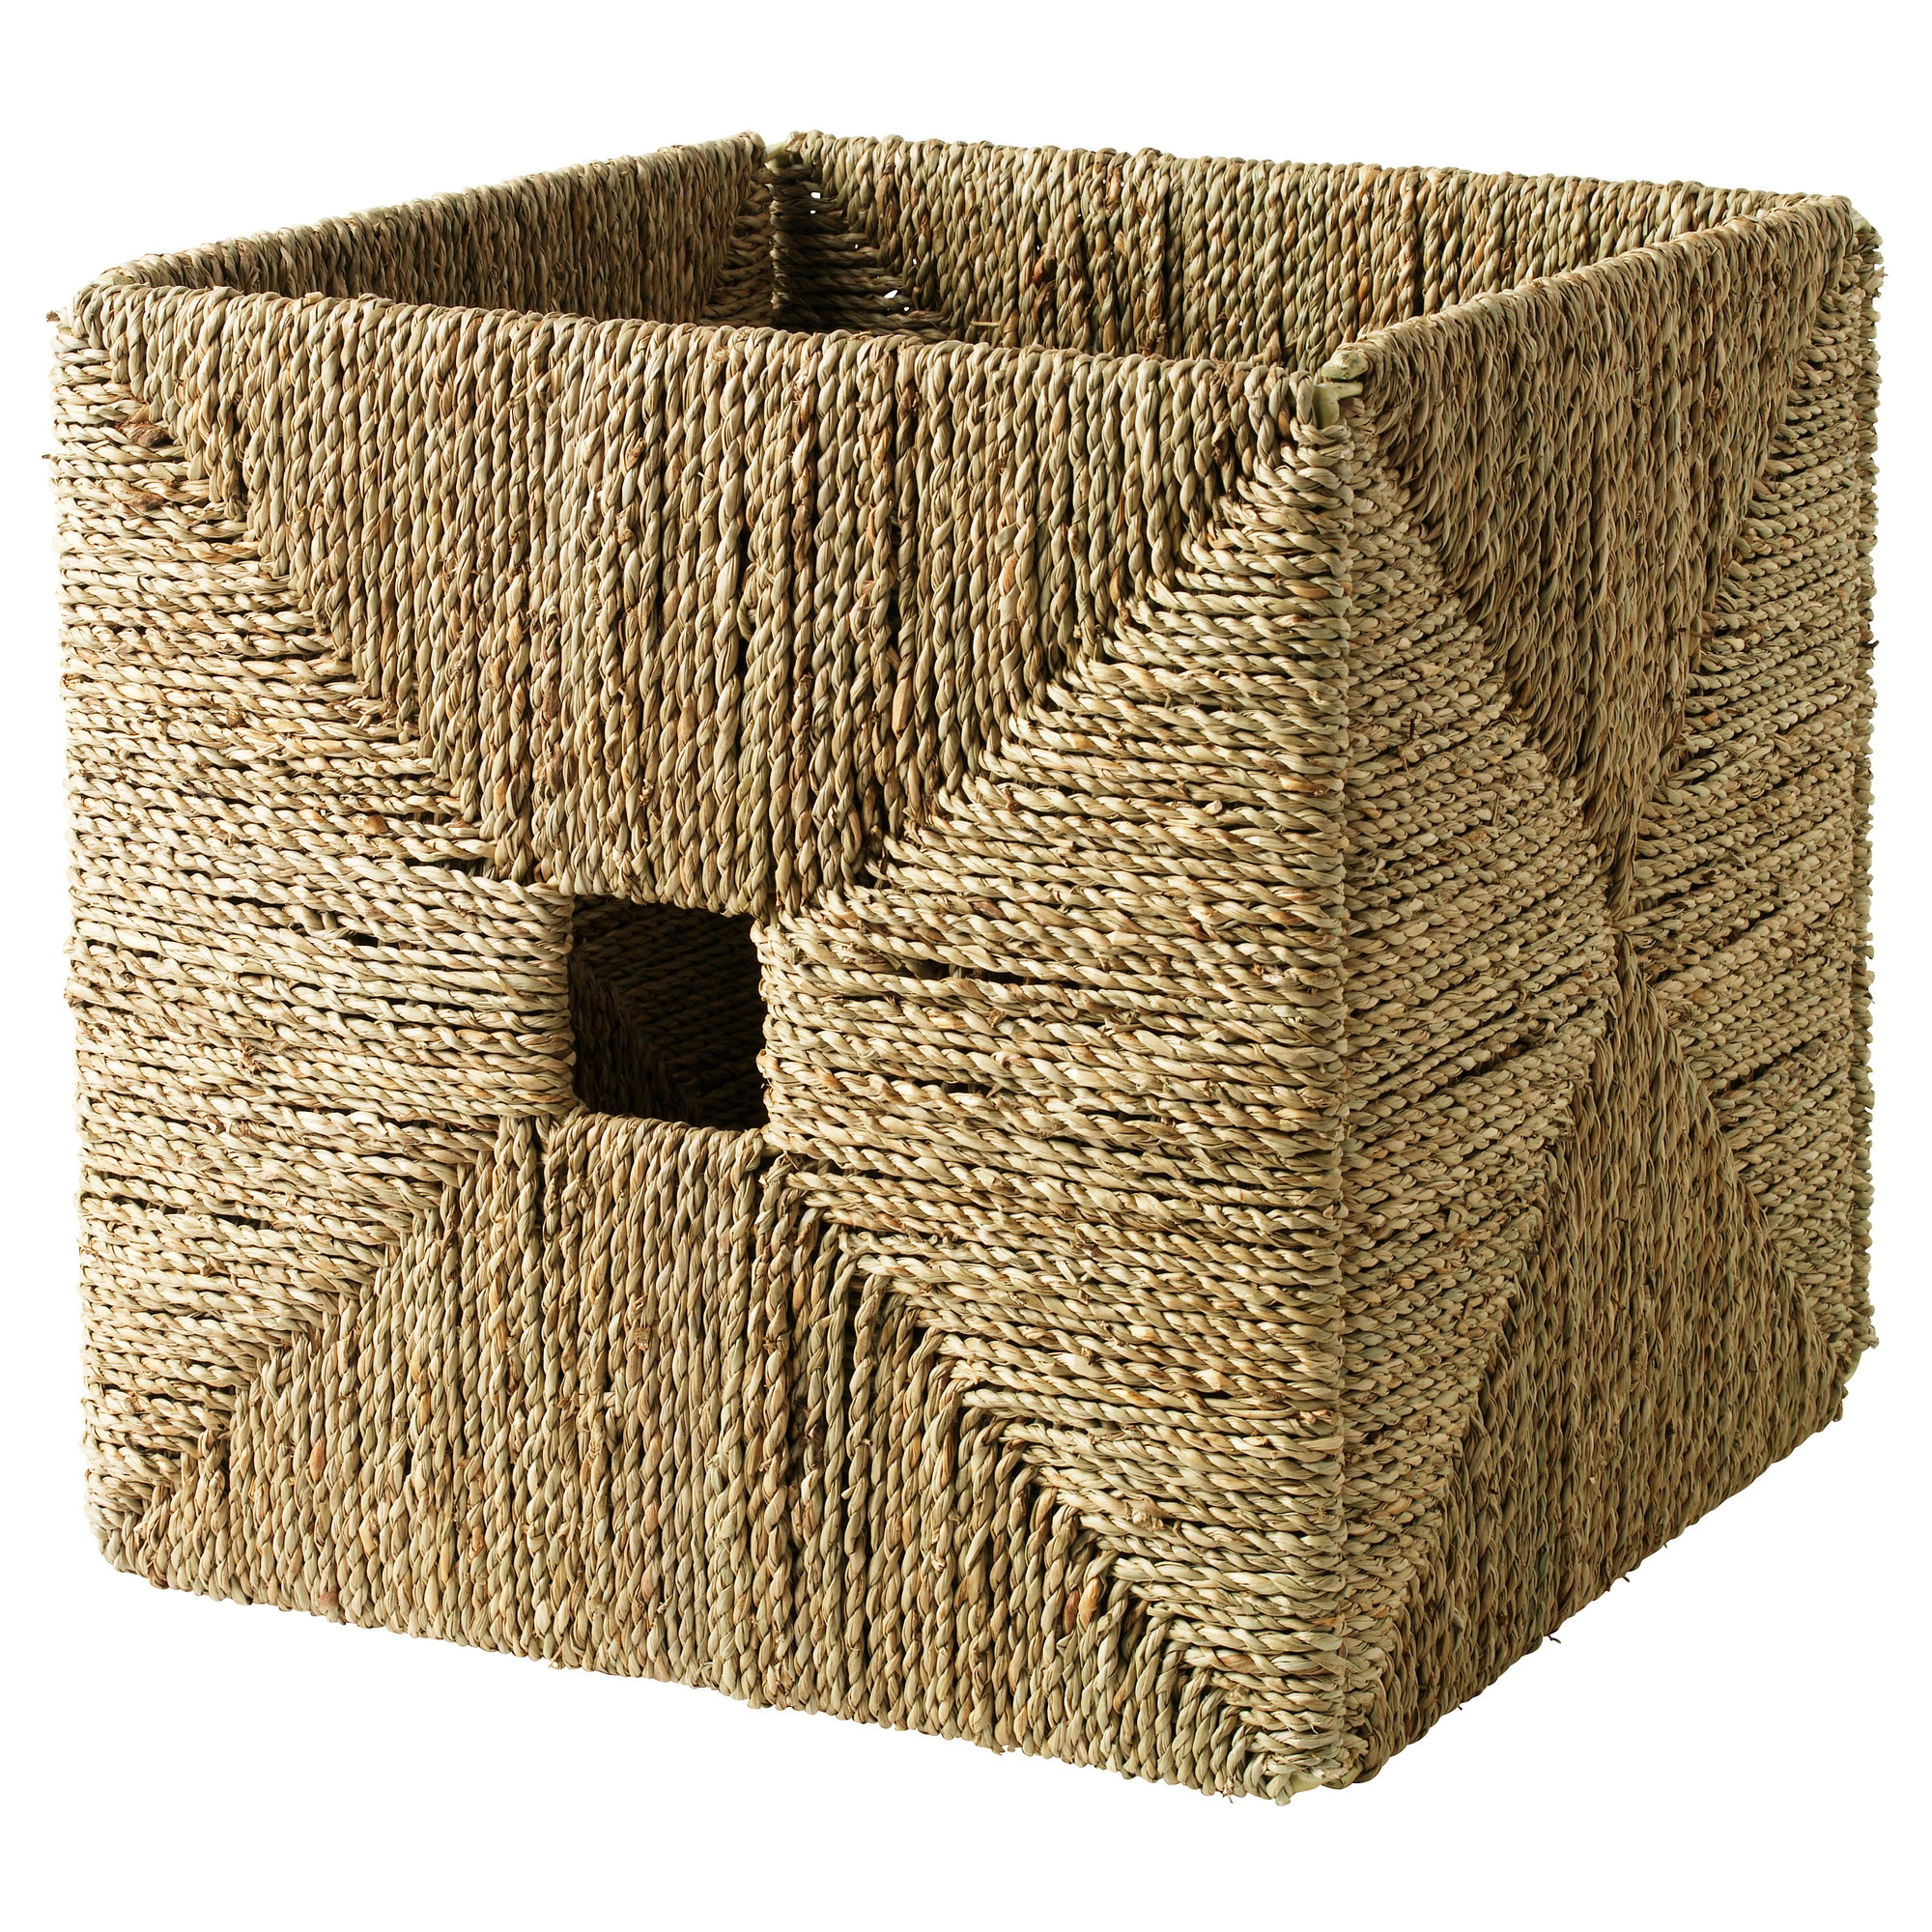 Uncategorized Storage Containers Ikea storage boxes baskets ikea knipsa basket seagrass width 12 depth 13 height 12